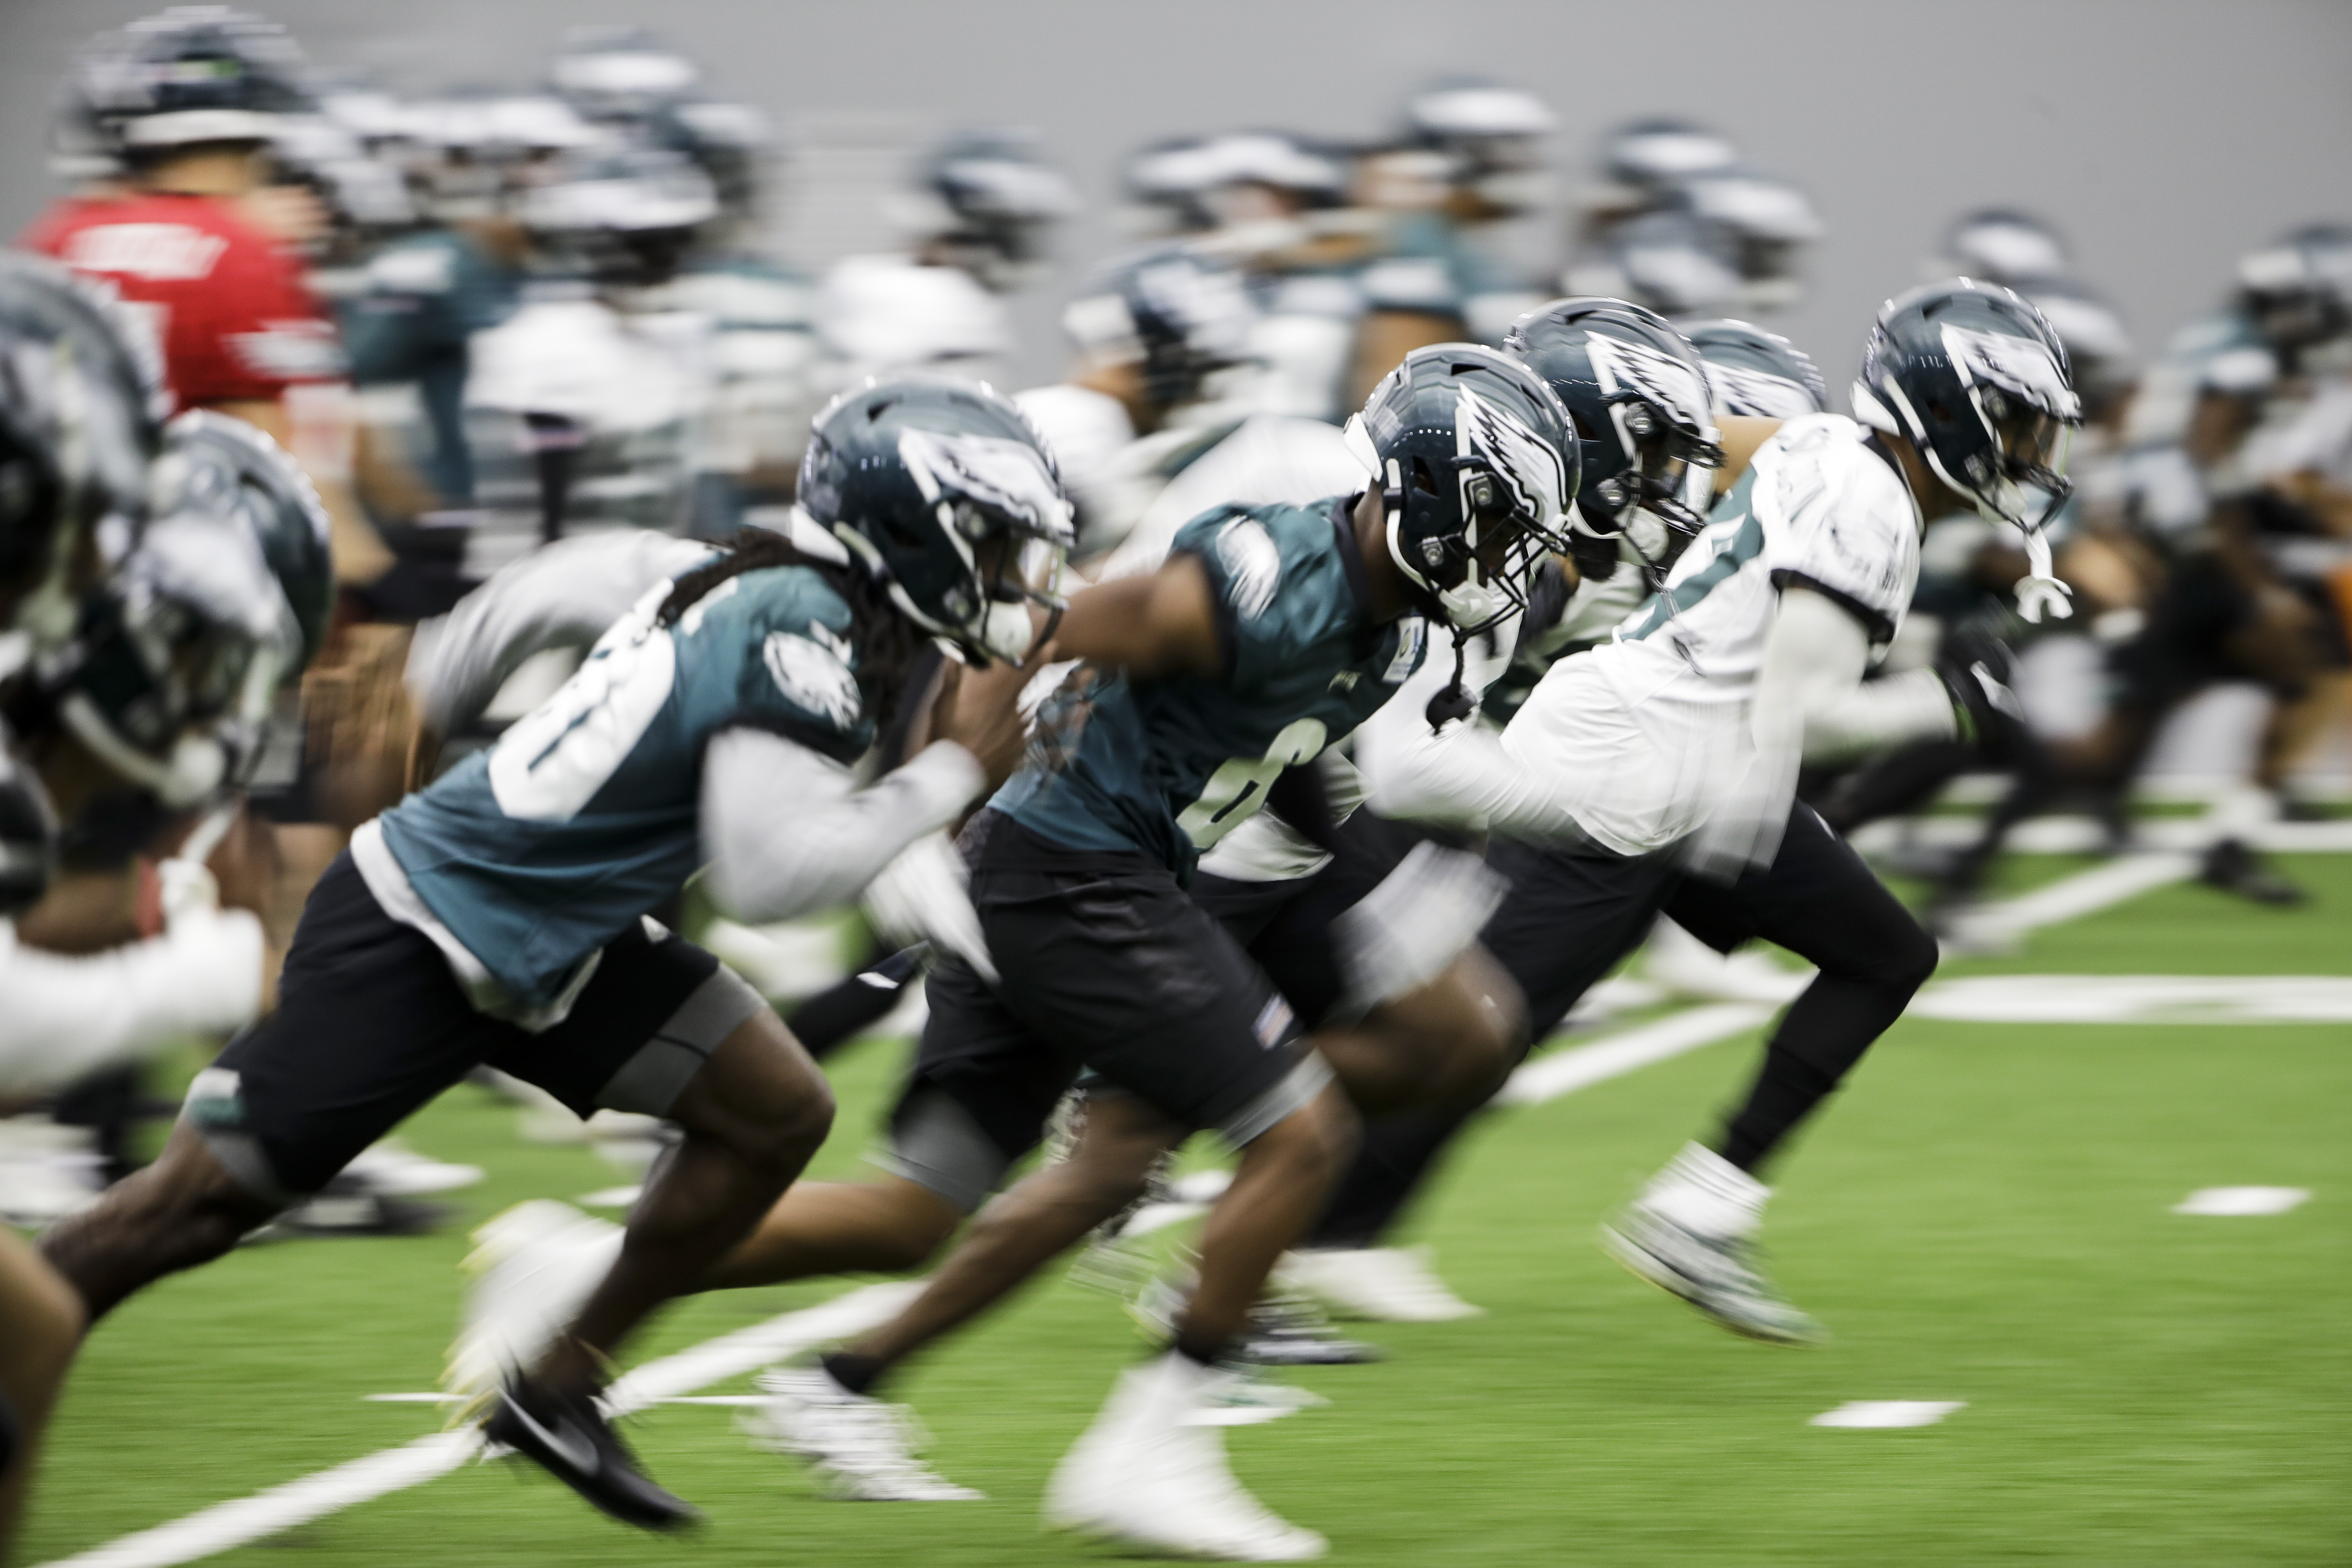 What we learned from Philadelphia Eagles minicamp: 6 takeaways on Carson Wentz, DeSean Jackson, Avonte Maddox and more